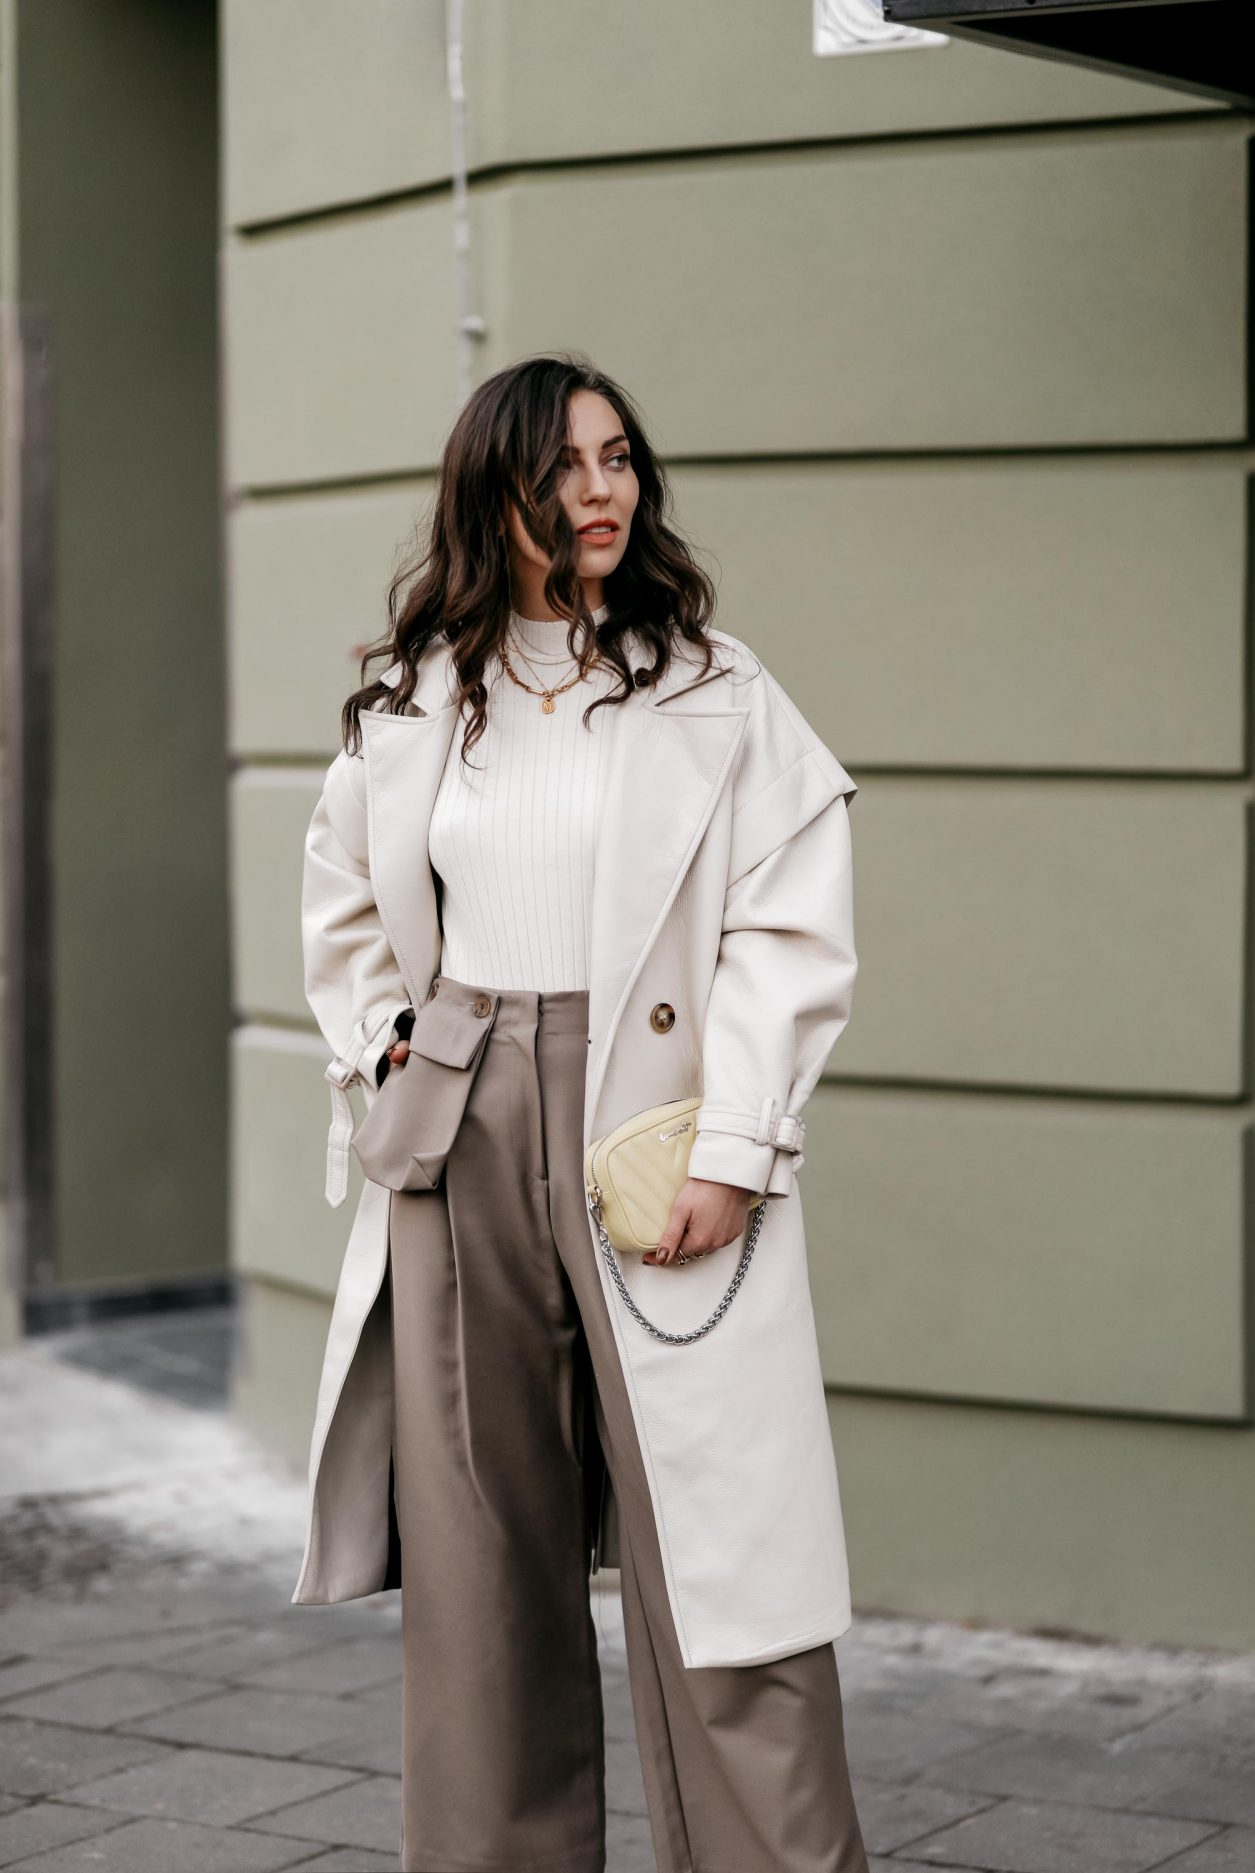 Spring Streetstyle outfit by Berlin fashion blogger Masha Sedgwick | Minimalistic, effortless cool, casual chic, wearing off white lack leather Apparis trench coat, off white Iris & Ink knit shirt, brown wide Frankie Shop pants with front pocket, lemon yellow WEAT crossbody mini bag, golden rings and necklaces, khaki green Charles & Keith pumps, hair style: black waves, photographer Jeremy Moeller